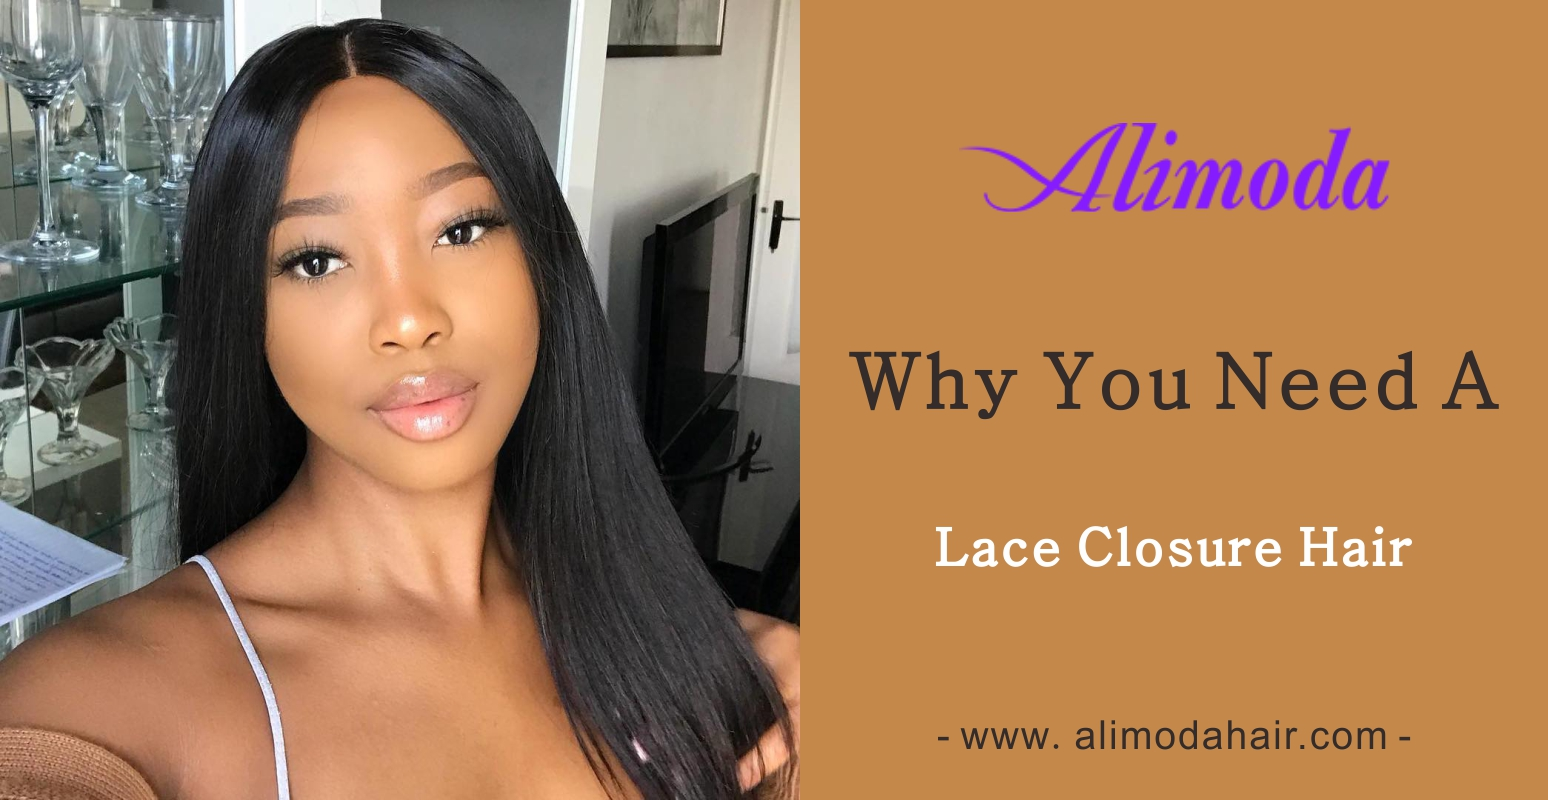 Why you need a lace closure hair?